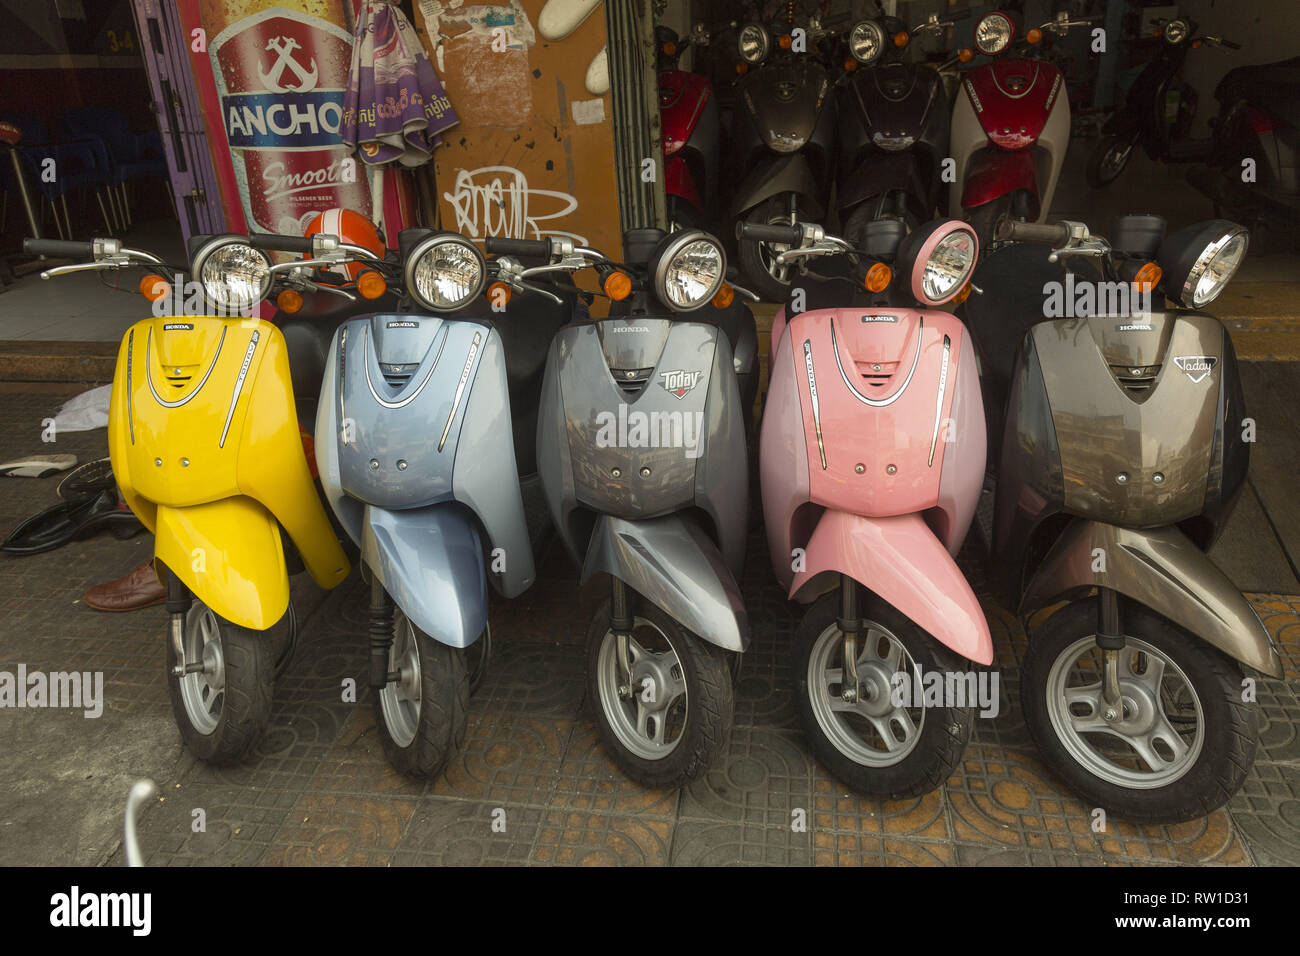 Honda scooters on sale in Phnom Penh, Cambodia - Stock Image